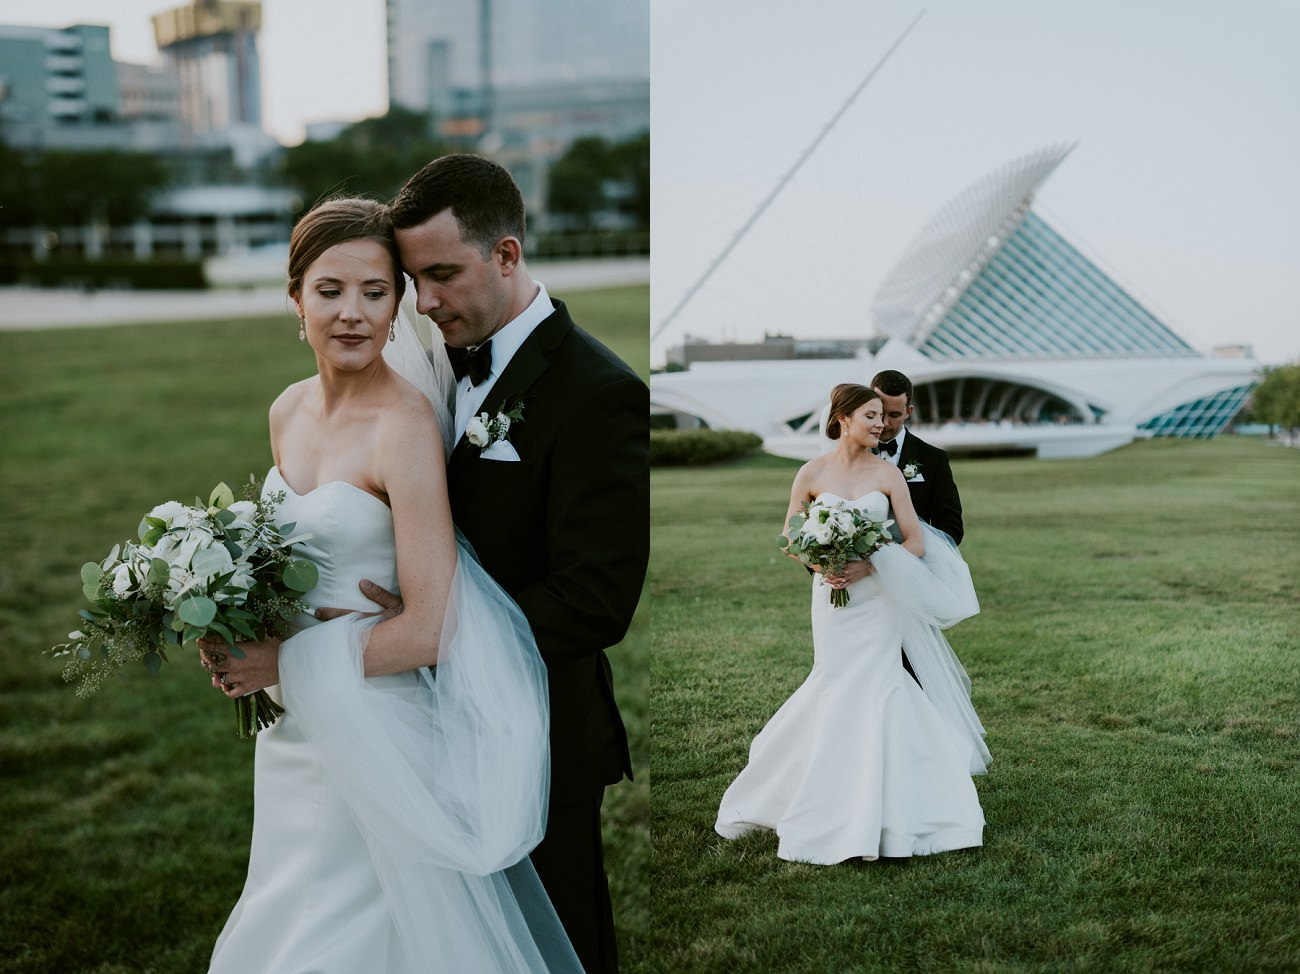 Discovery World Milwaukee Wisconsin Wedding,Elegant Black Tie Wedding Milwaukee Wisconsin - Natural Intuition Photography Milwaukee Wedding Photographer